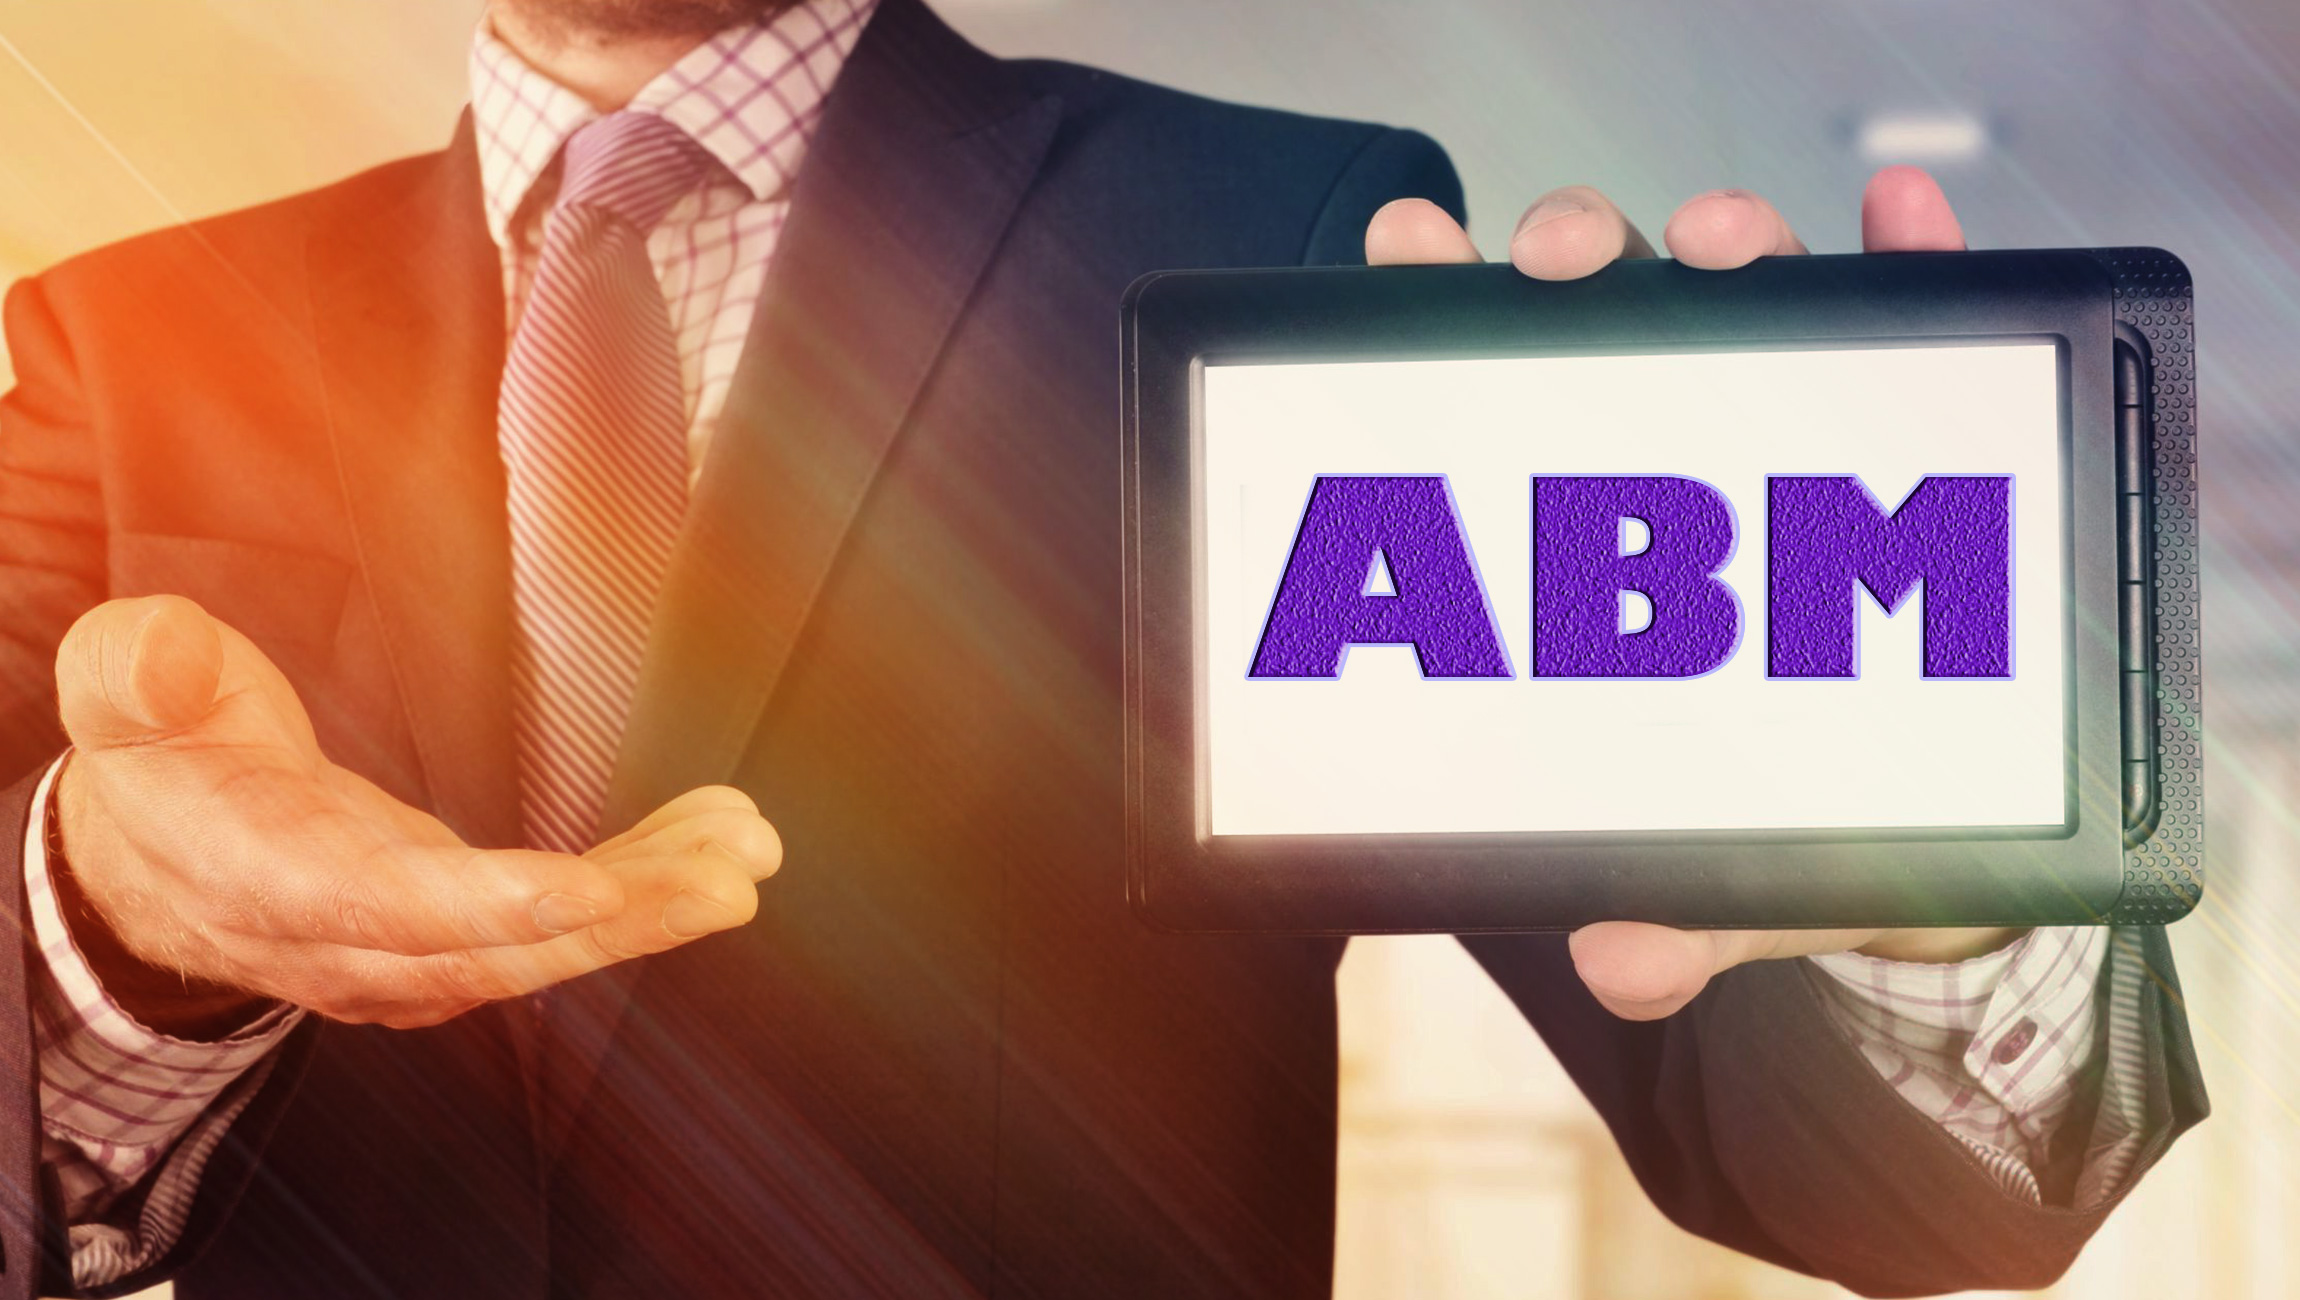 MarTech's 5 ABM Best-Practices from Industry Leaders